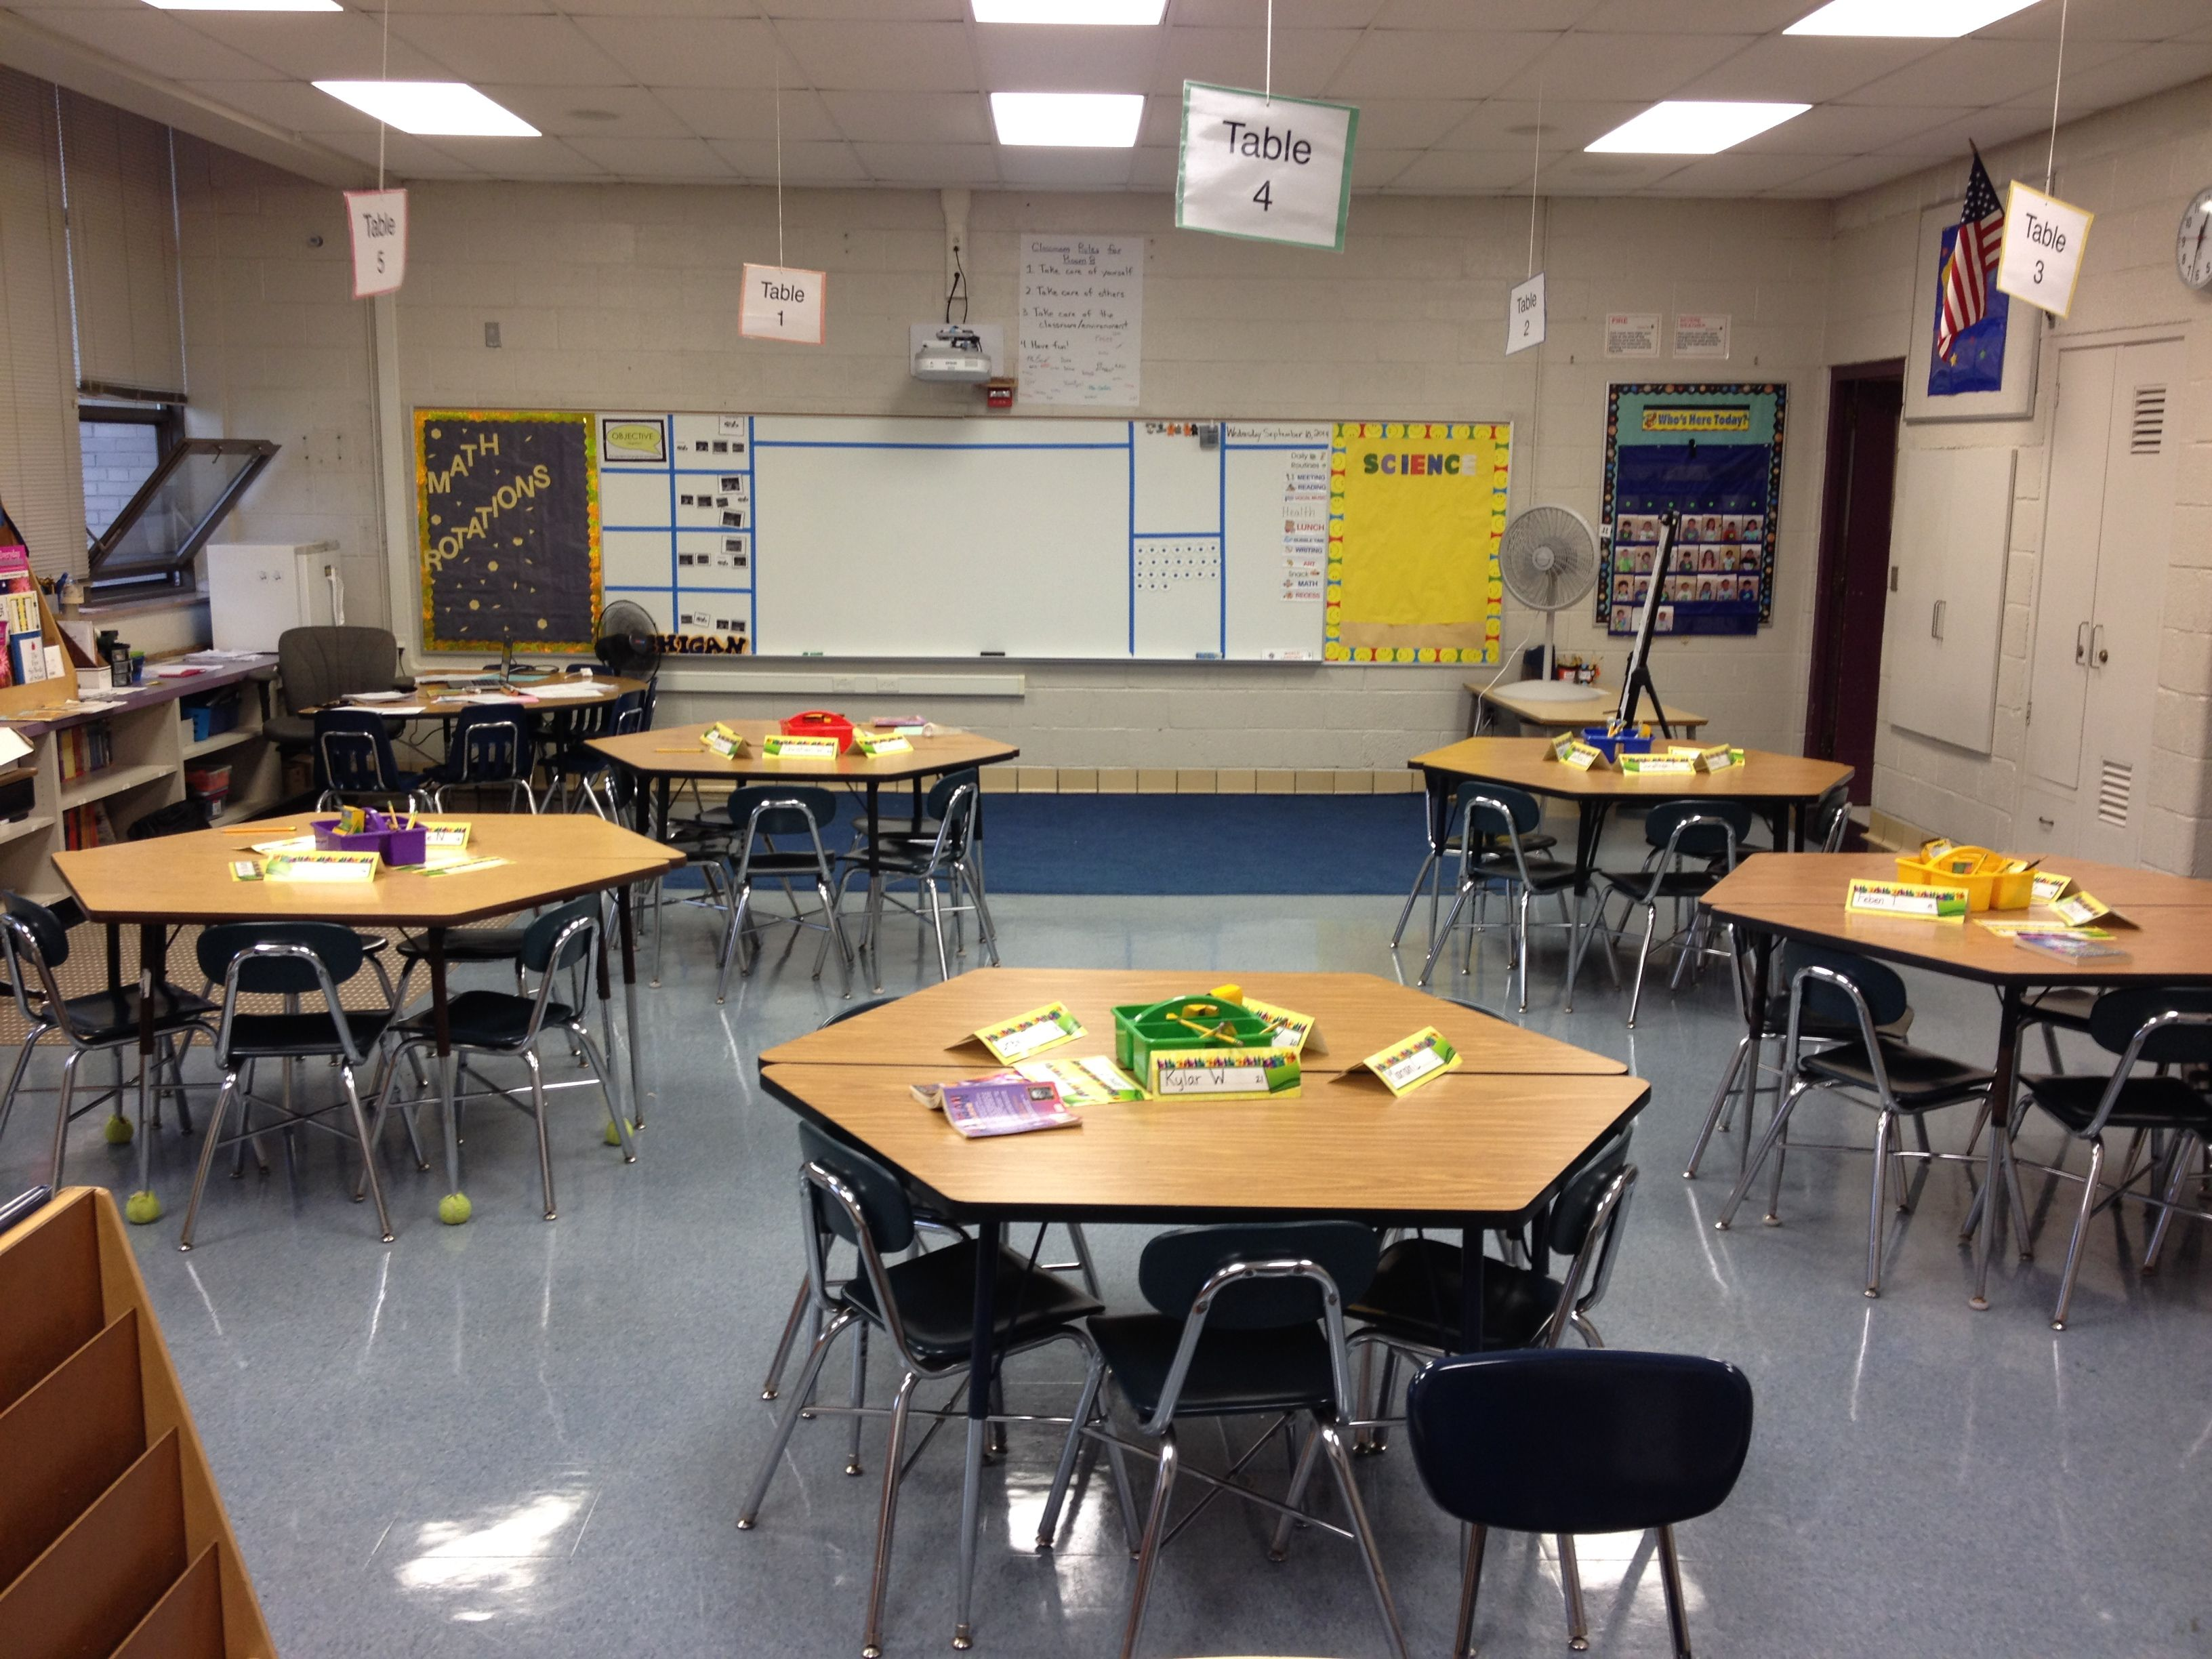 classroom needs special separate seating tables furniture teacher children comfortable setting room student arrangements establishing clutter pathways there mentor front